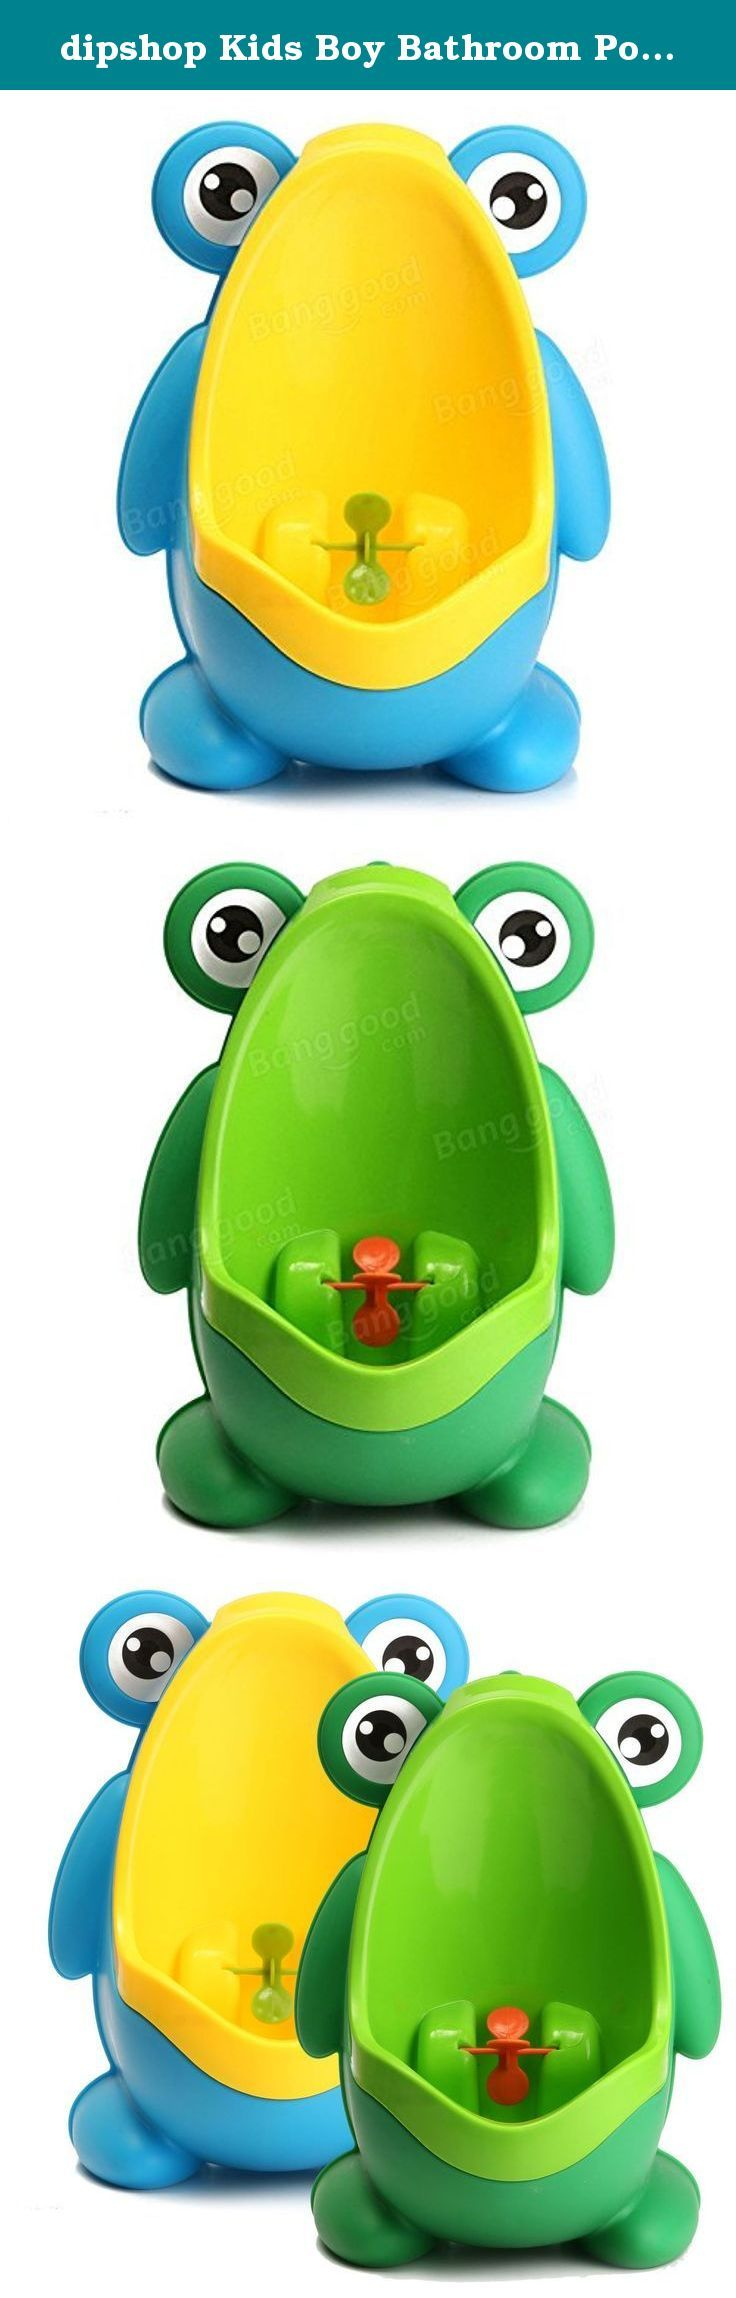 dipshop Kids Boy Bathroom Potties Children Early Education Trainning Frog Potties Remova ( Blue ). Kids Boy Bathroom Potties Children Early Education Trainning Frog Potties Removable Urinal : It can cultivate baby to form a habit of pee independently from childhood. Urine groove separation design and light surface makes the item easy to clean. Environmentally friendly material, nontoxic and no peculiar smell. Frog shape and rotating windmill improves your babies' interest. Strong sucker…